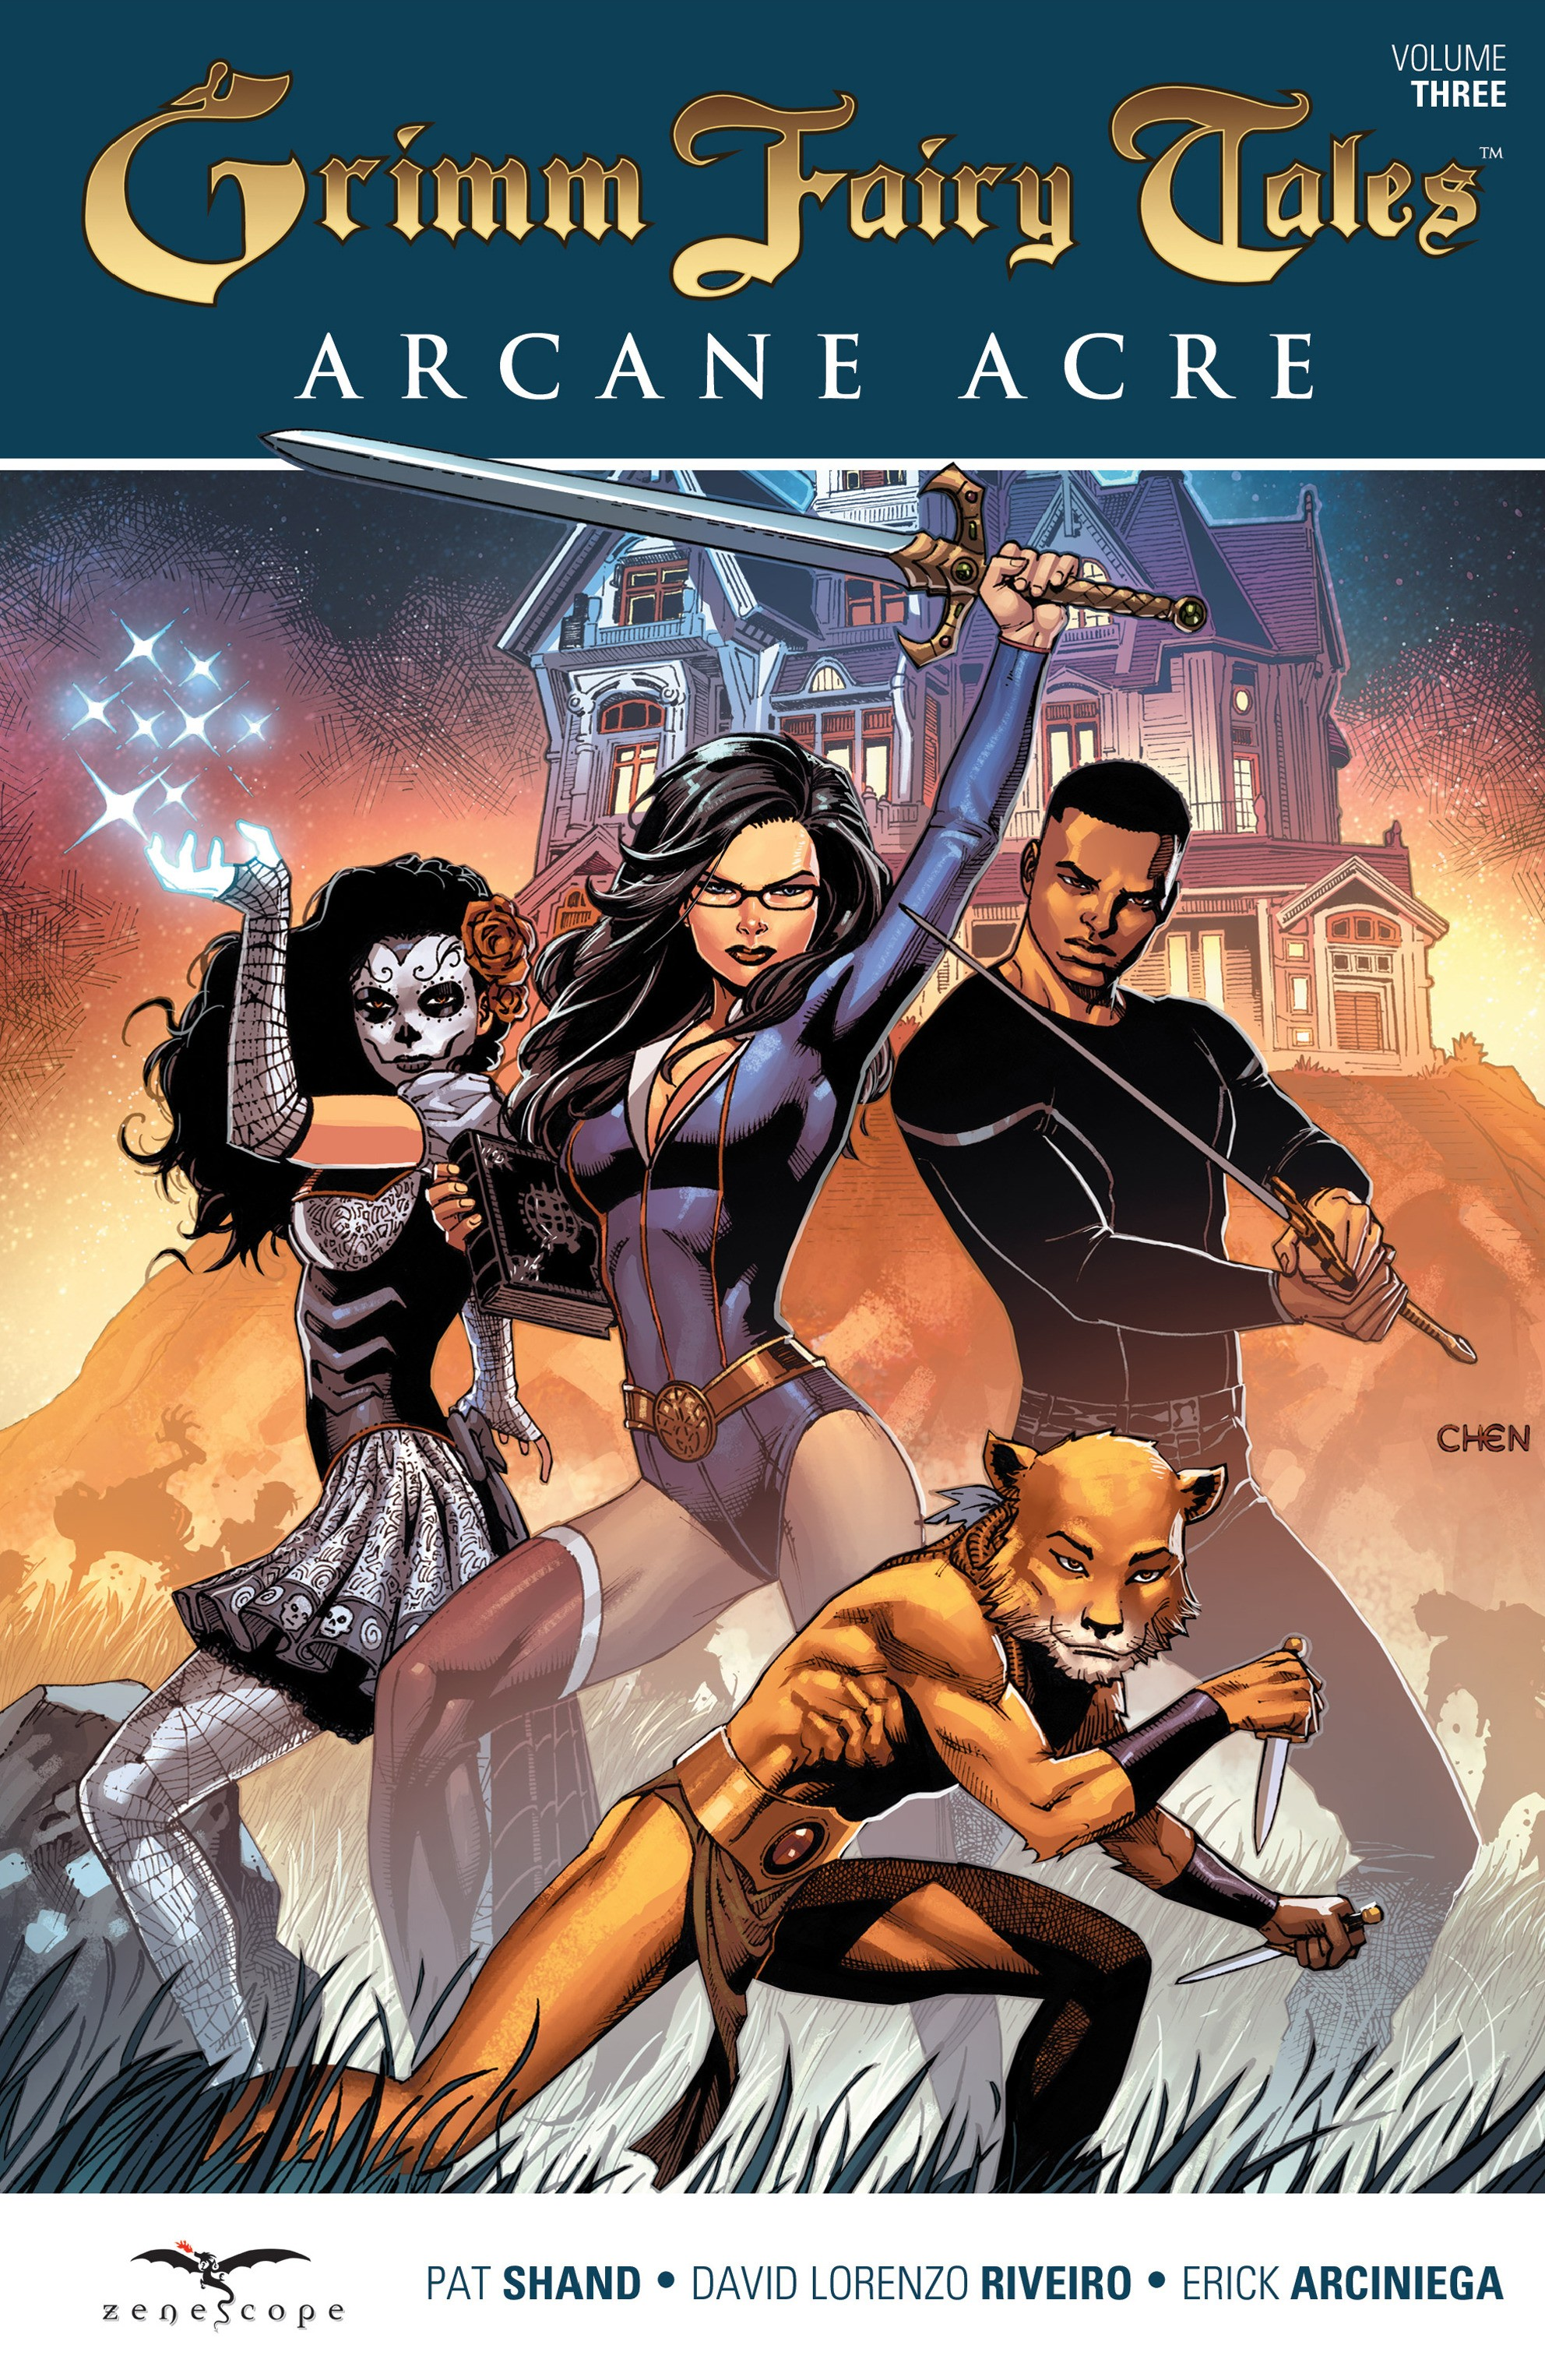 Read online Grimm Fairy Tales: Arcane Acre comic -  Issue # TPB 3 - 1